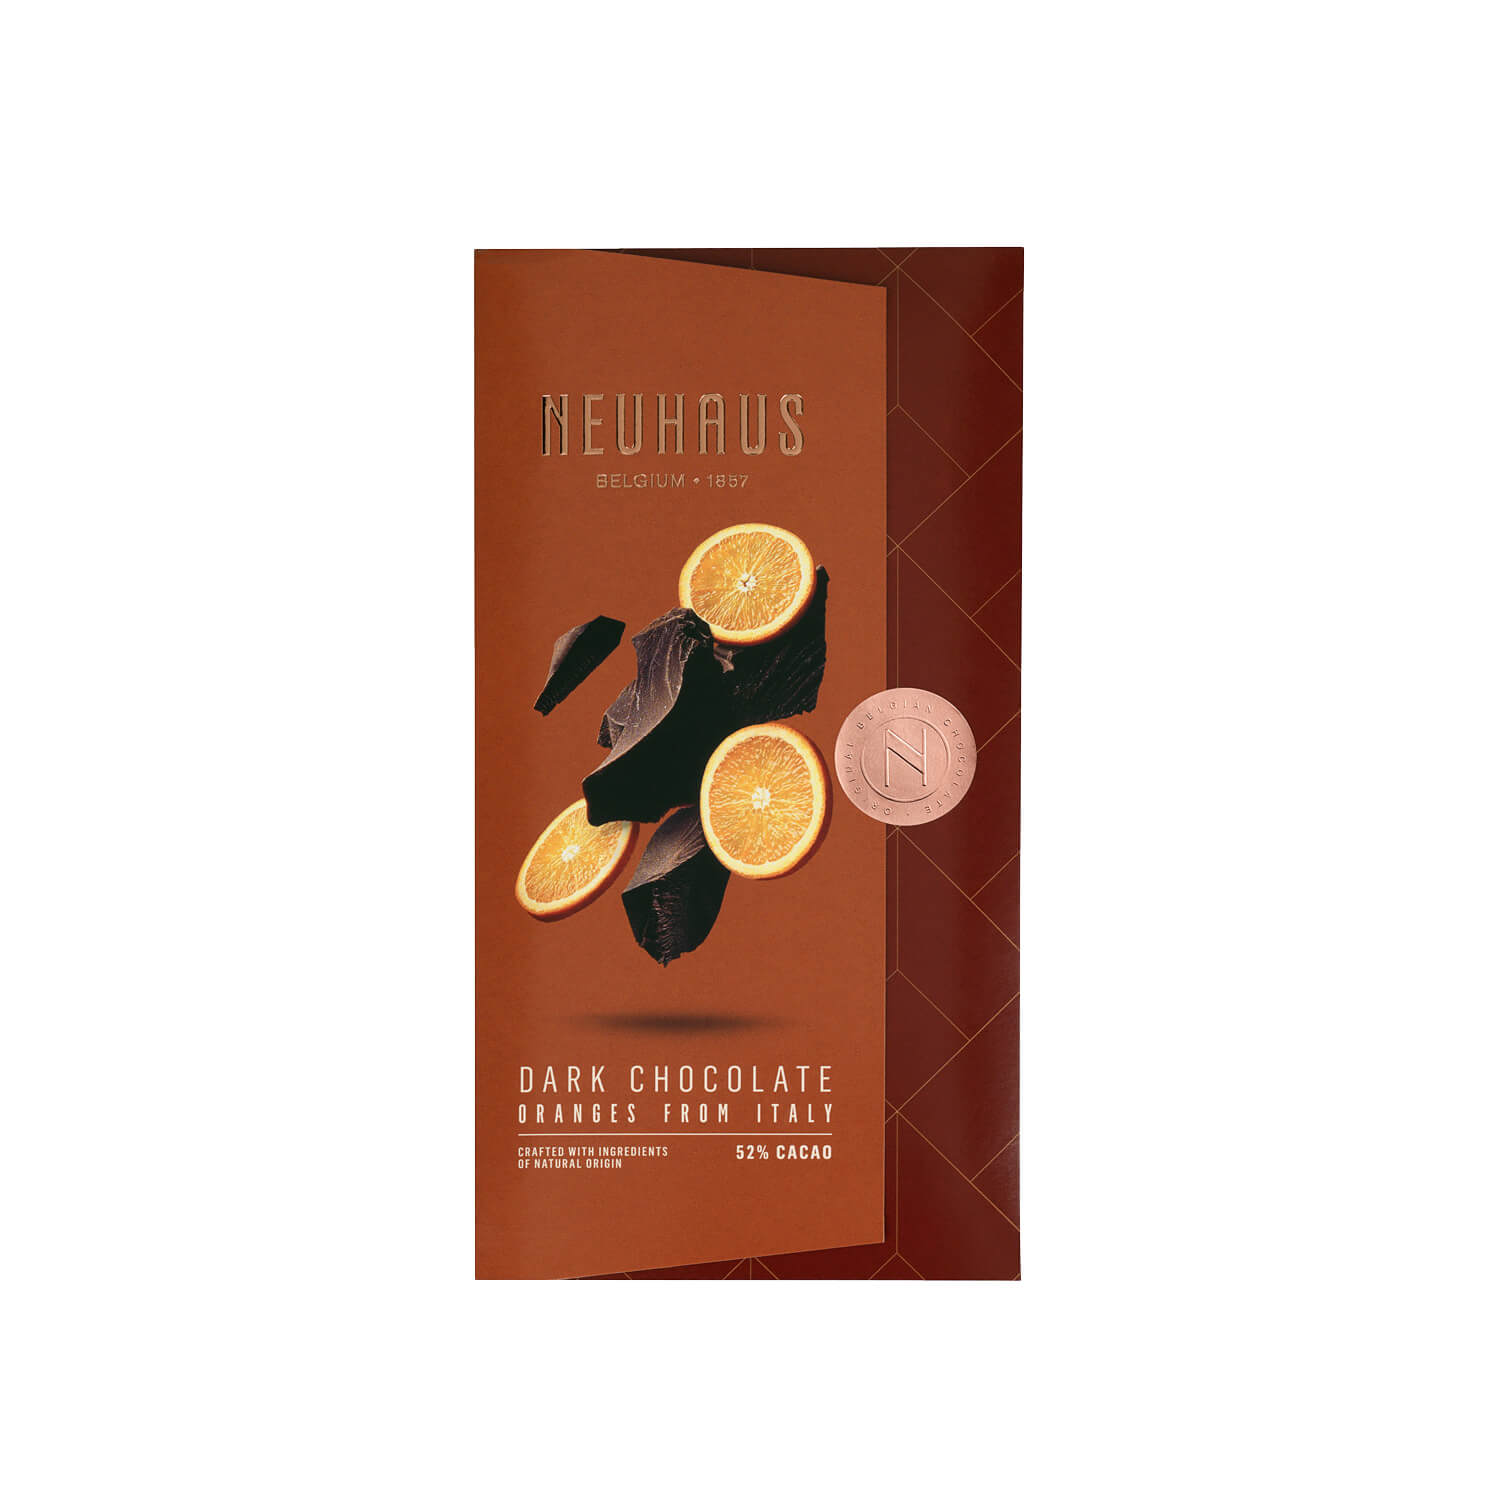 Neuhaus - Tablet - Pure chocolade - Sinaasappel